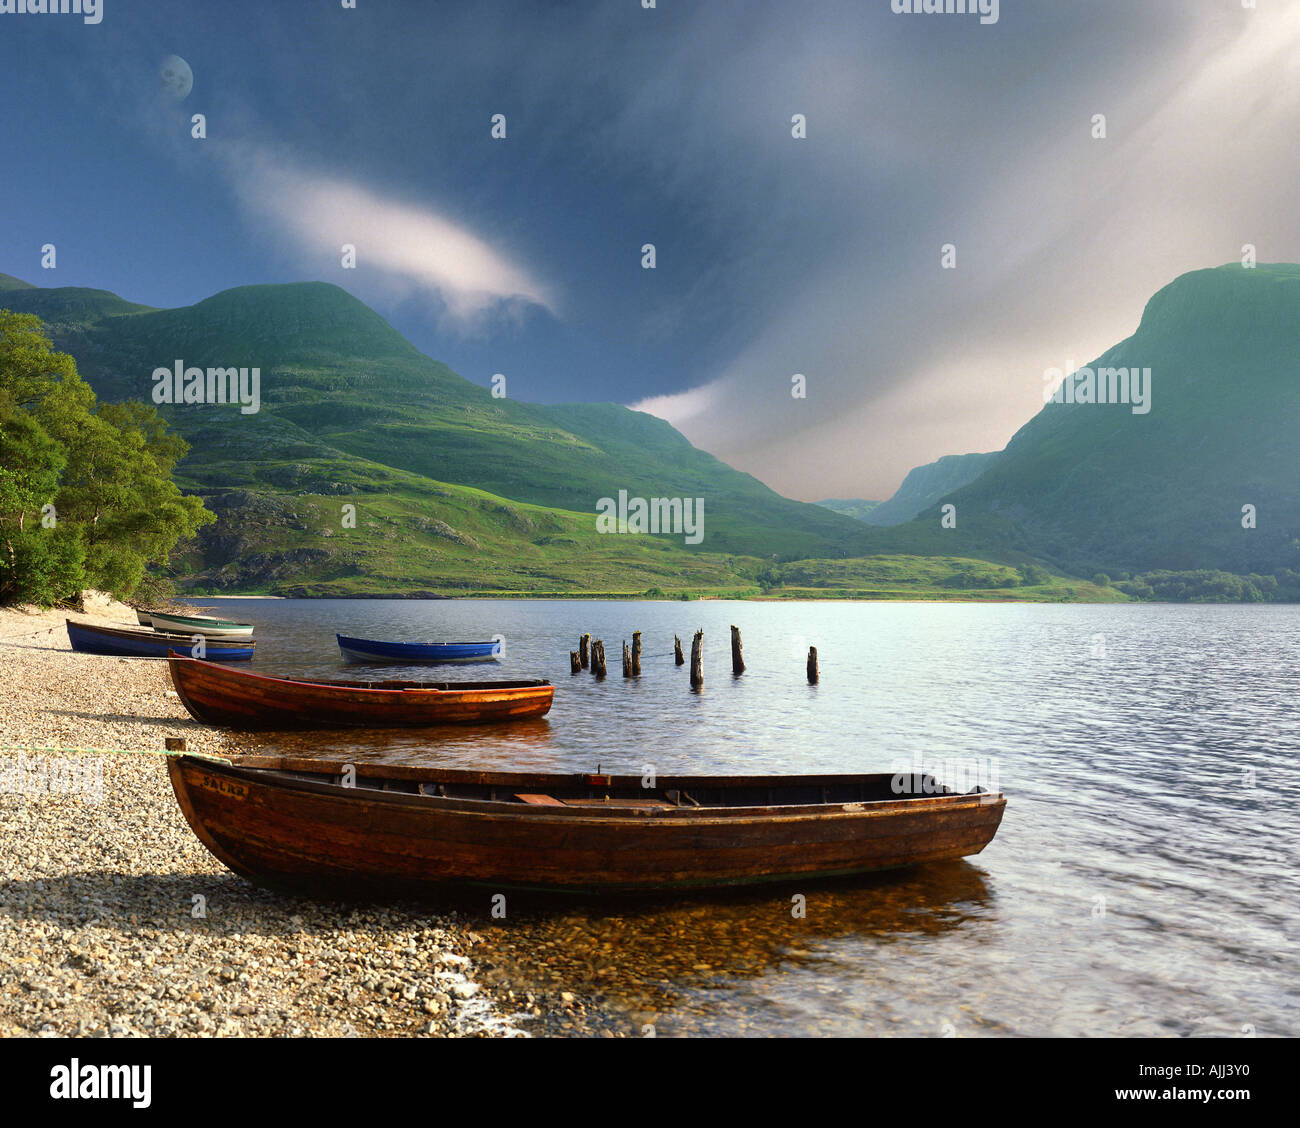 GB - SCOTLAND:  Loch Maree in the Highlands - Stock Image